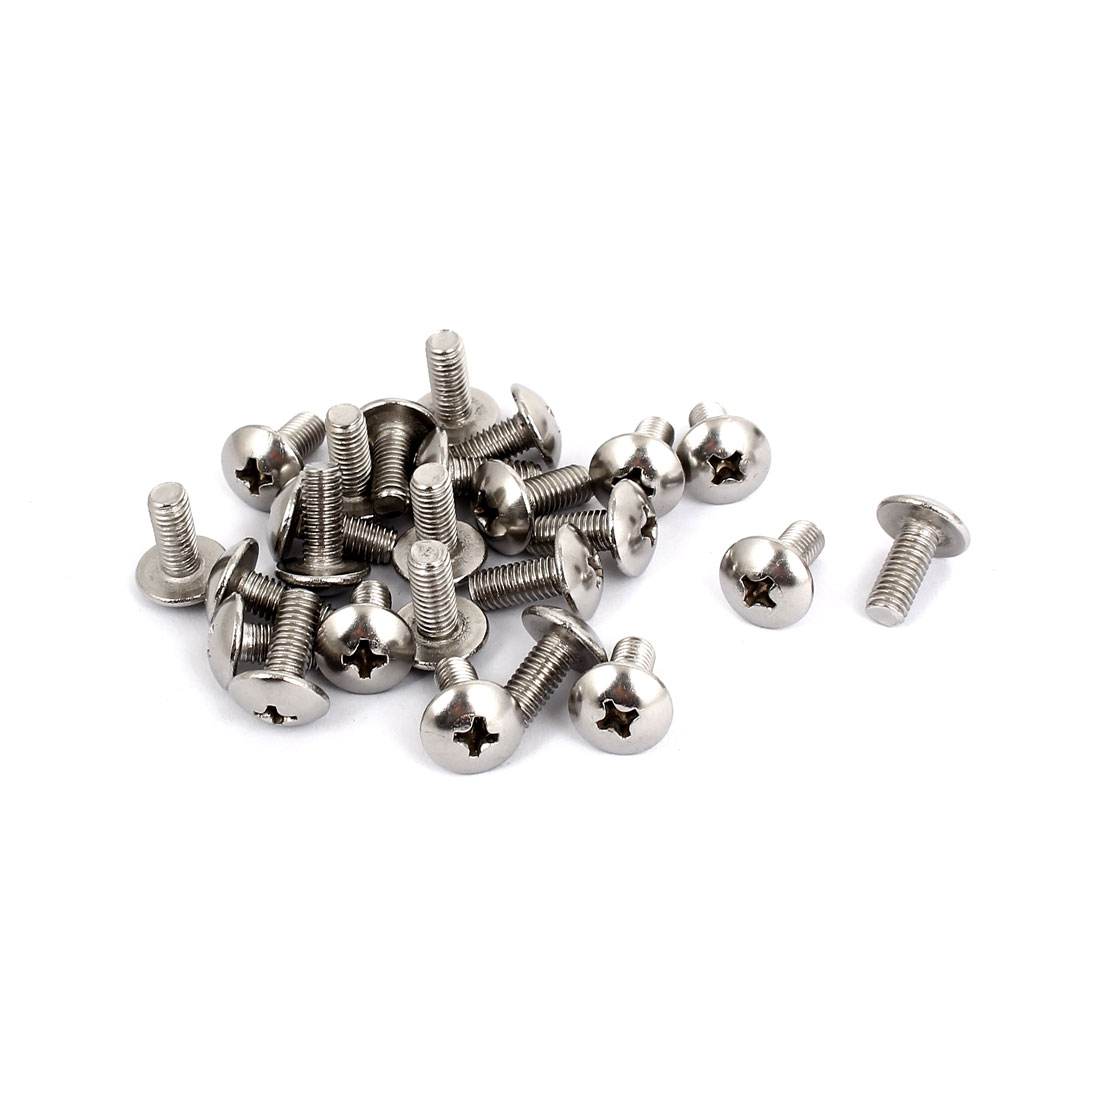 M5x12mm Stainless Steel Truss Phillips Head Machine Screws 25pcs